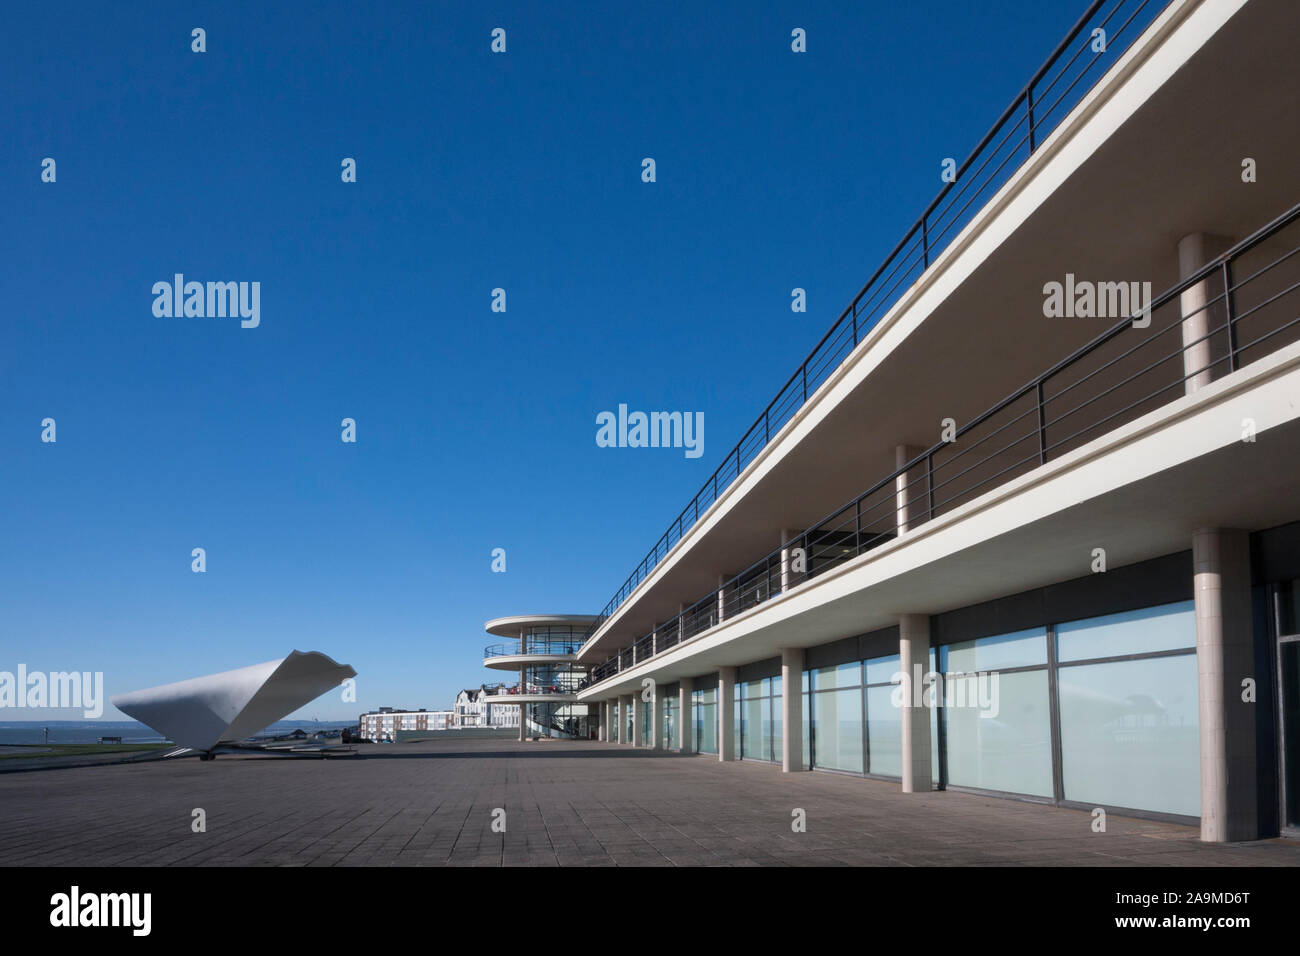 De La Warr Pavilion building, terrace and bandstand, Bexhill-on-Sea, East Sussex, England, UK Stock Photo